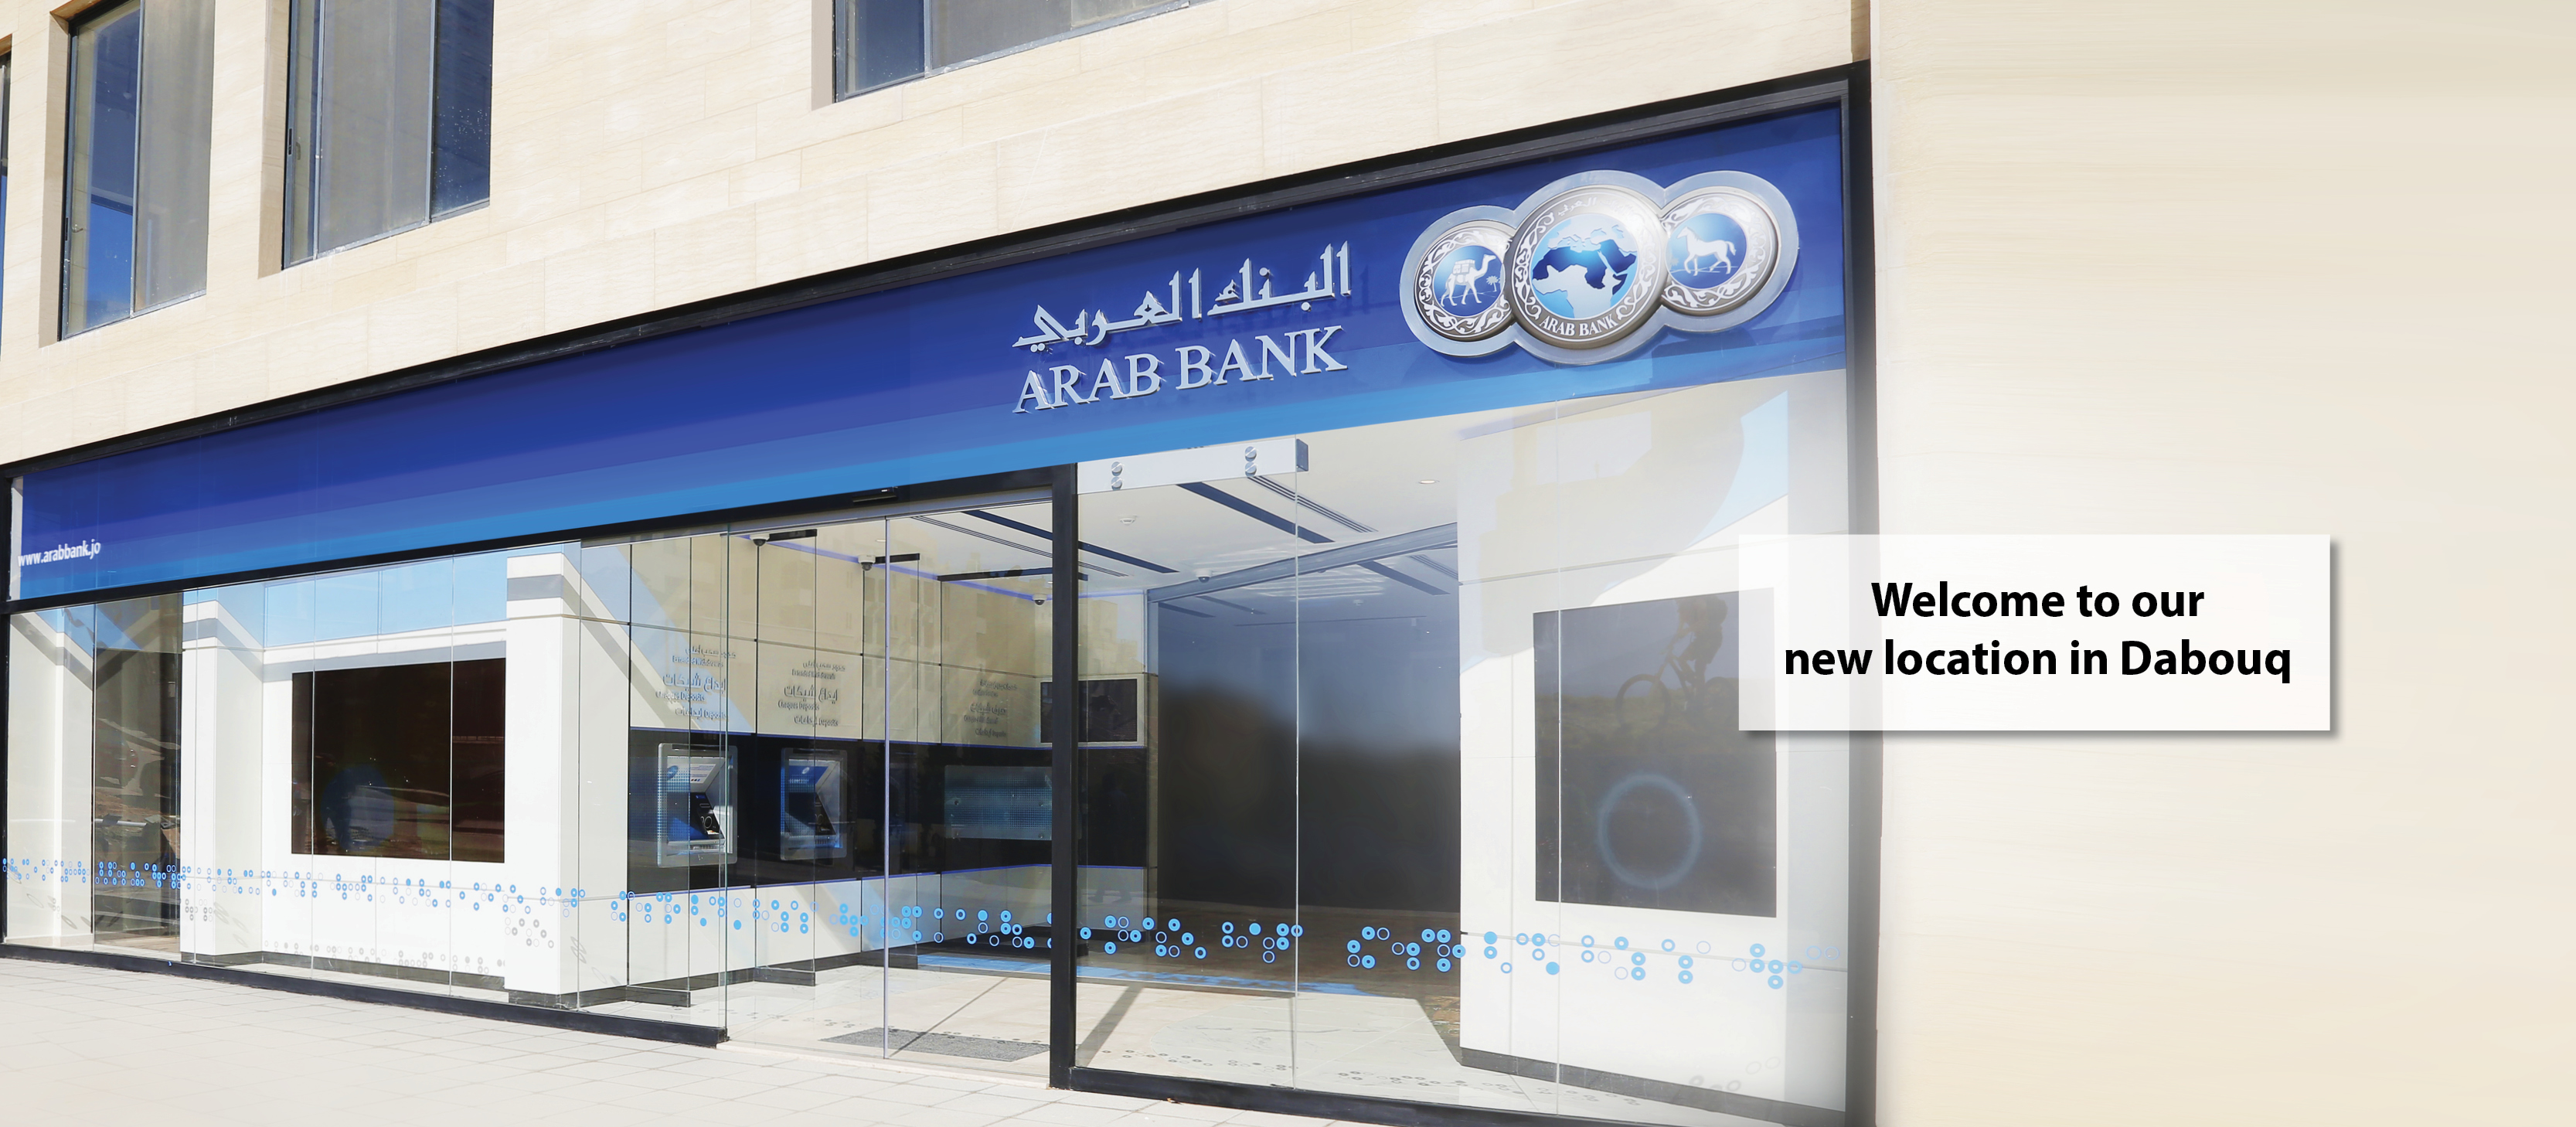 Relocation of Dabouq Branch Webbanner 1600x700-Amend-12